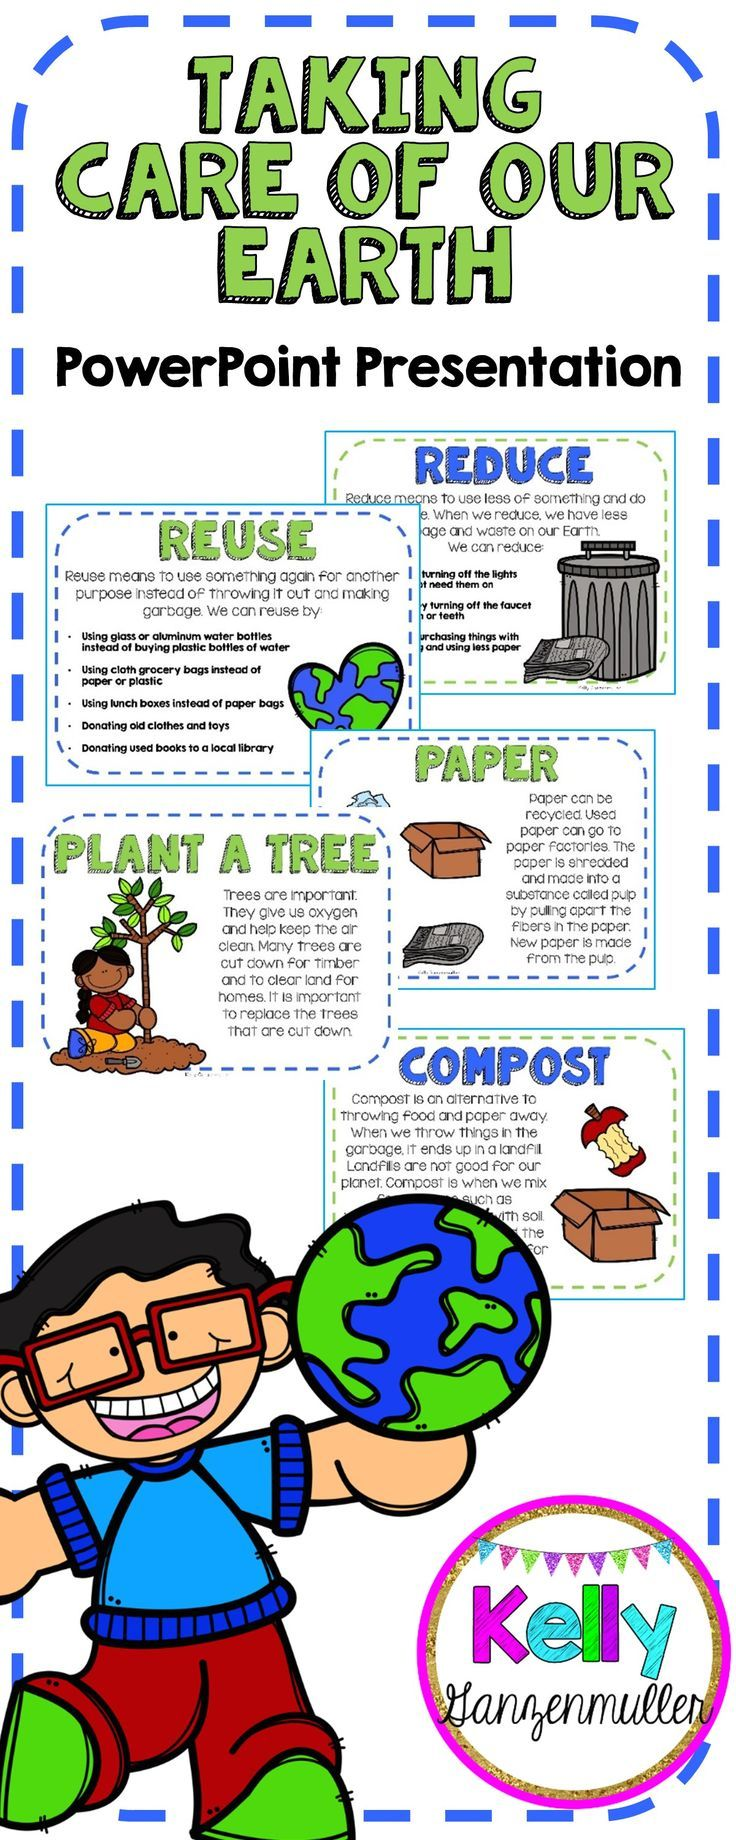 earth day taking care of our earth powerpoint presentation best of the end of the school. Black Bedroom Furniture Sets. Home Design Ideas